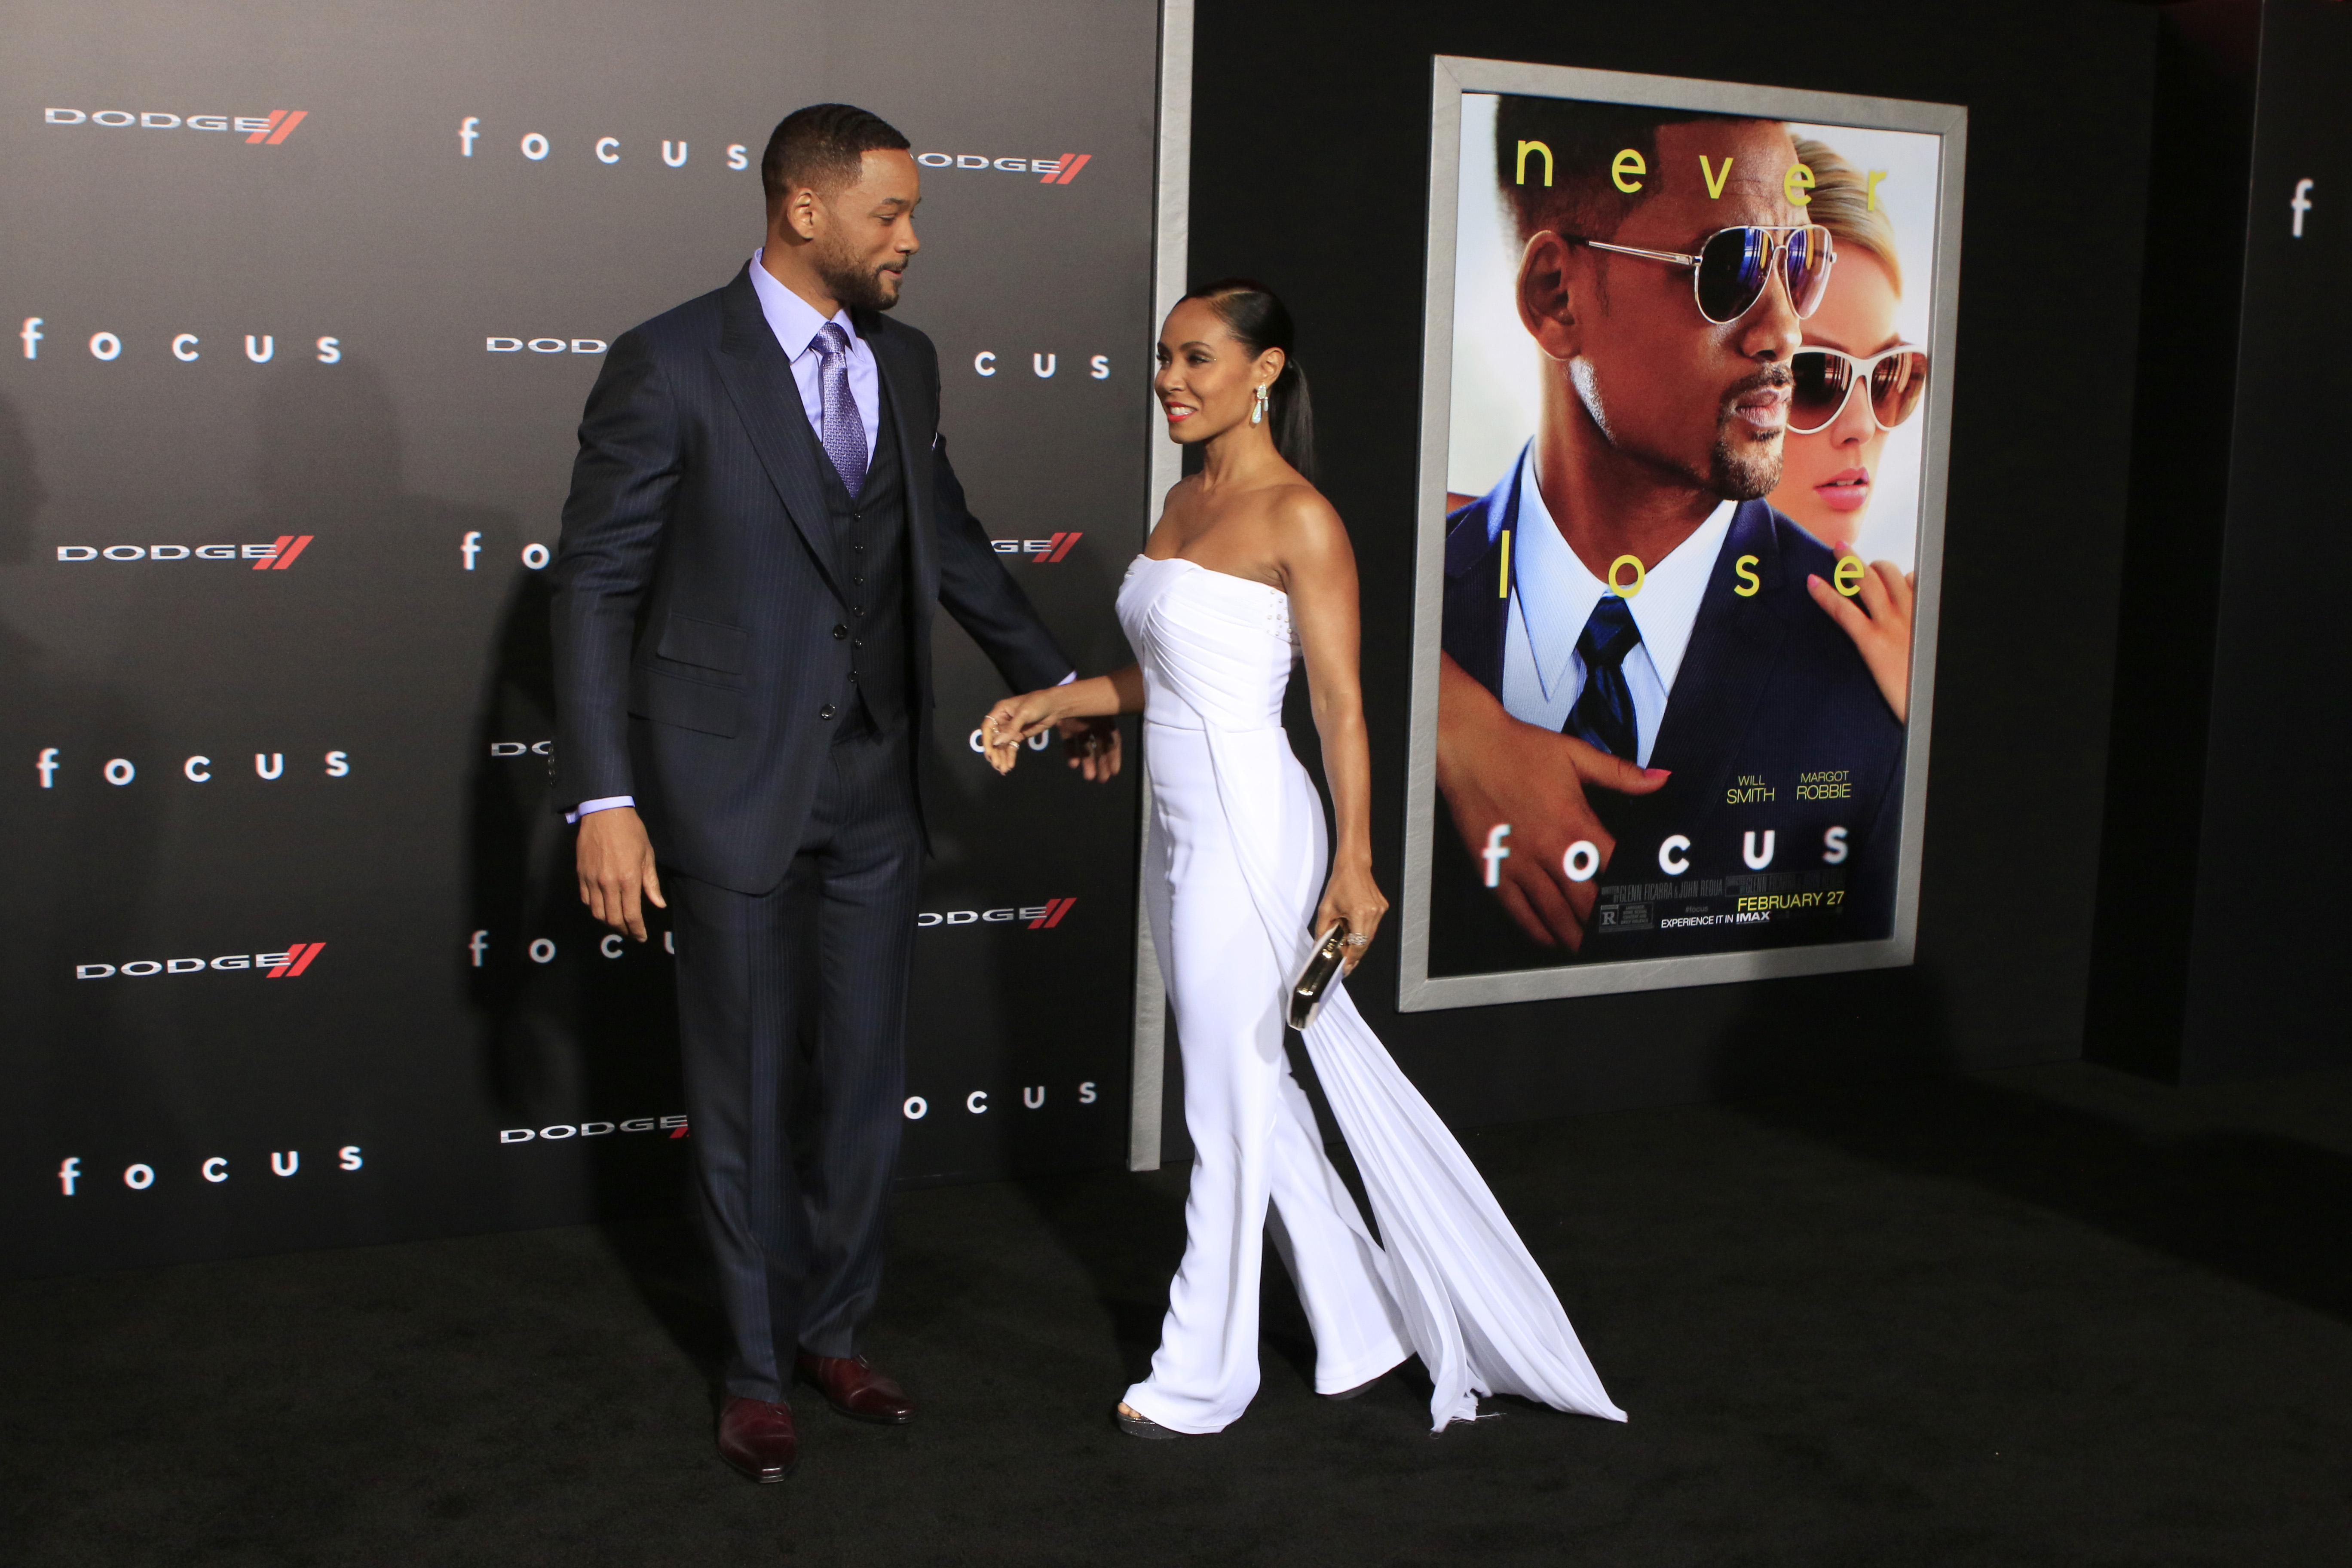 Will and Jada Pinkett Smith attend a red carpet event for a movie premiere